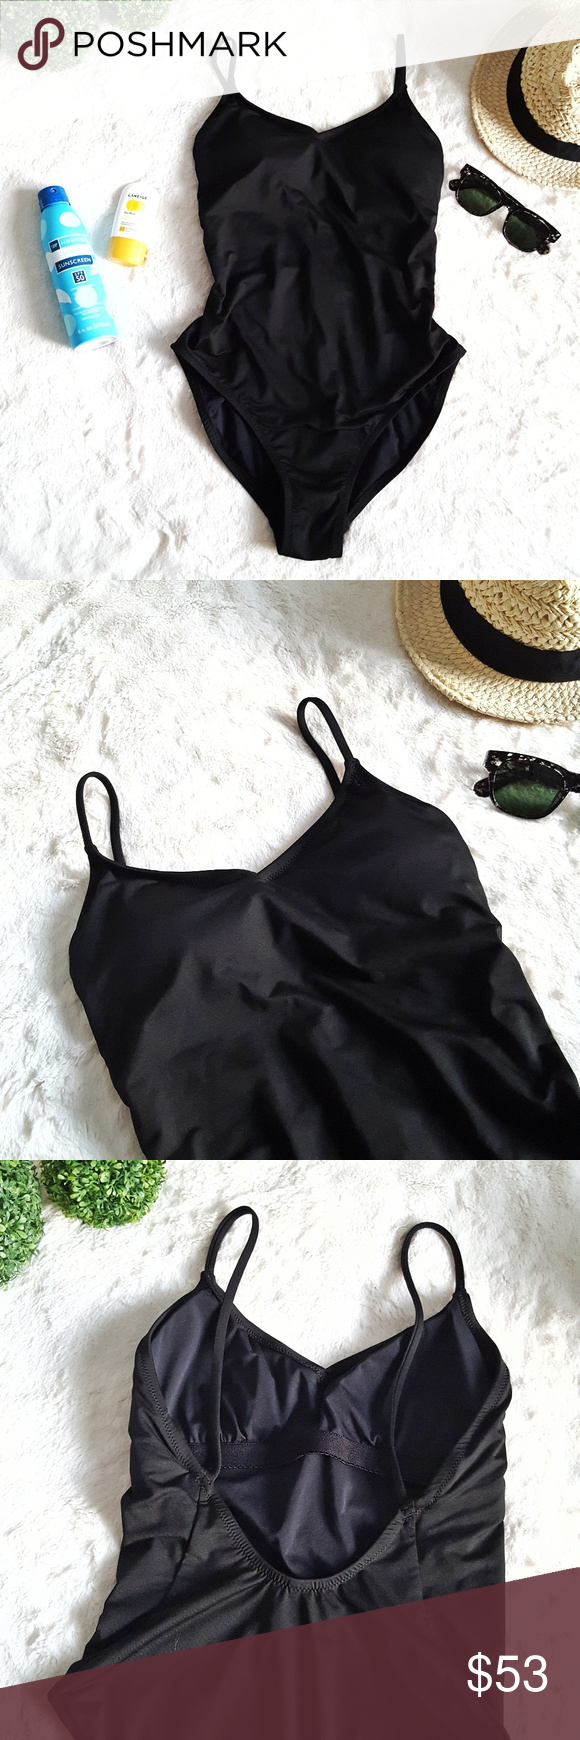 0d37baf145 NEW J.Crew Ballet one-piece swimsuit NWoT, Hygienic liner still intact.  Size 4 Long-torso ballet one-piece swimsuit in Italian matte.